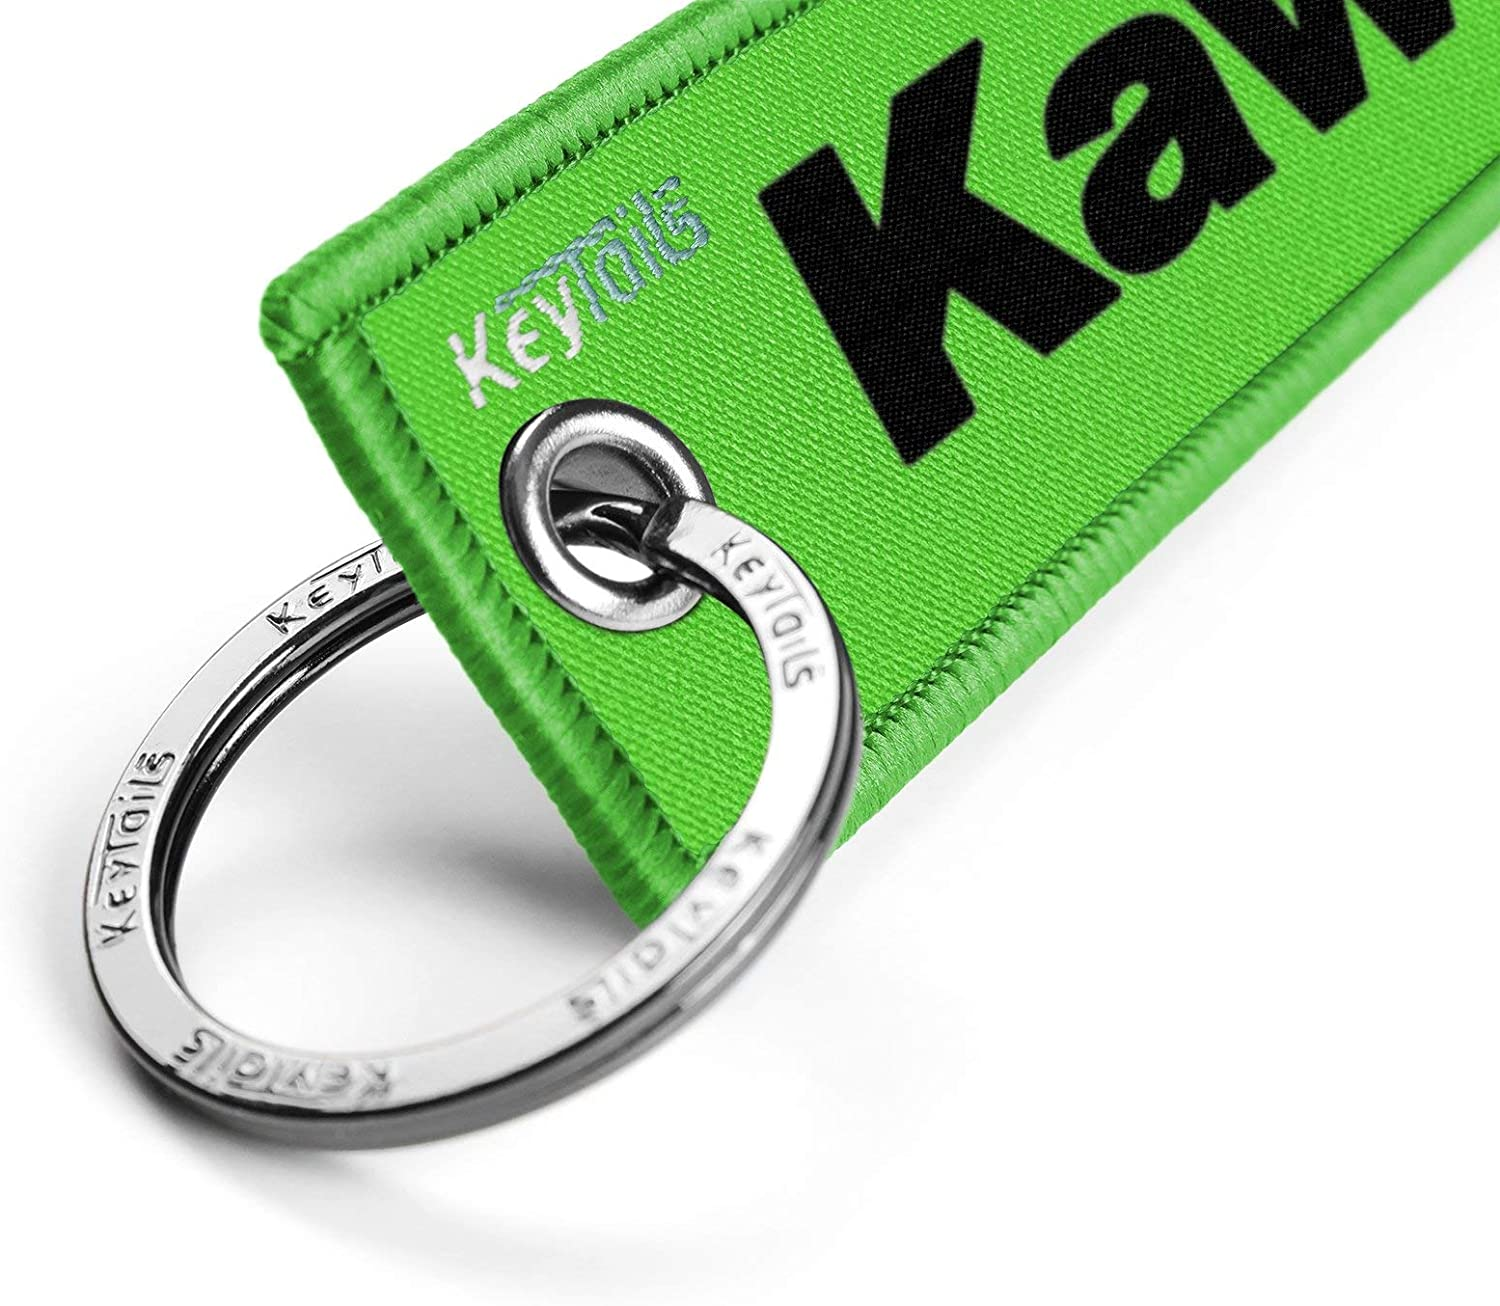 UTV KEYTAILS Keychains ATV Premium Quality Key Tag for Motorcycle Scooter Just Lean It